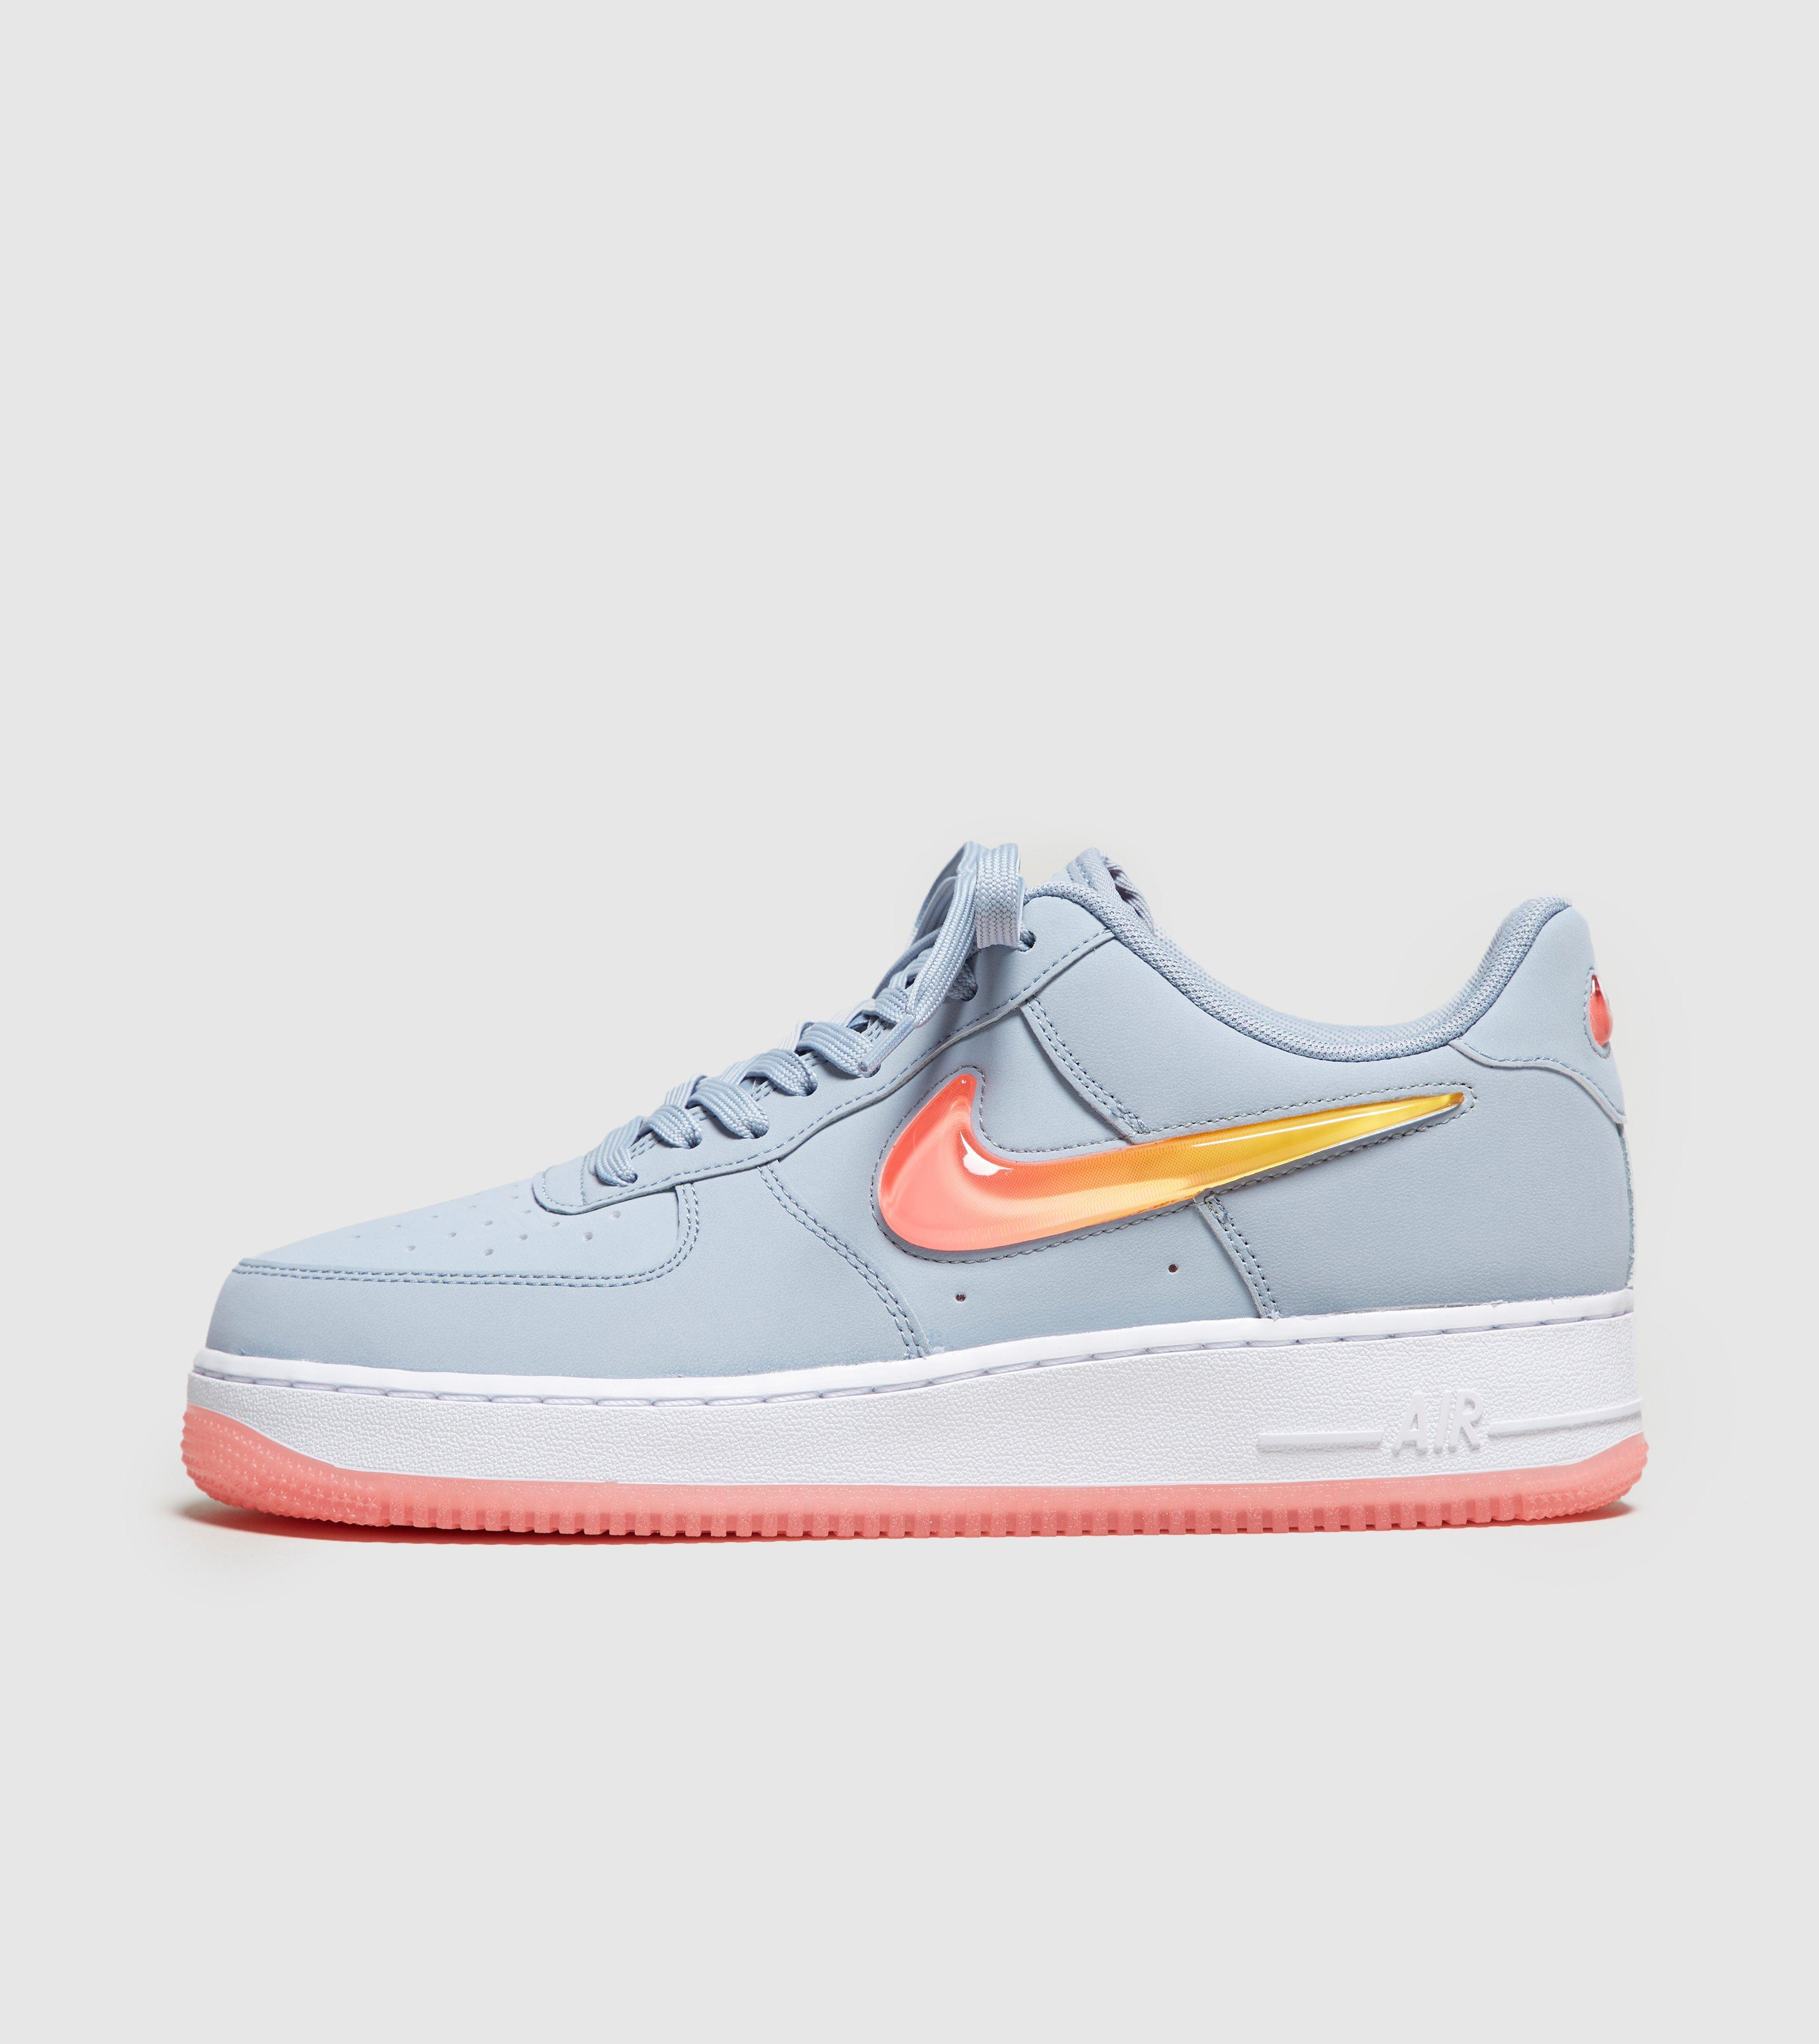 sneakers for cheap 1c22a 64b4c Nike Air Force 1 Premium  jelly  Women s in Gray - Lyst